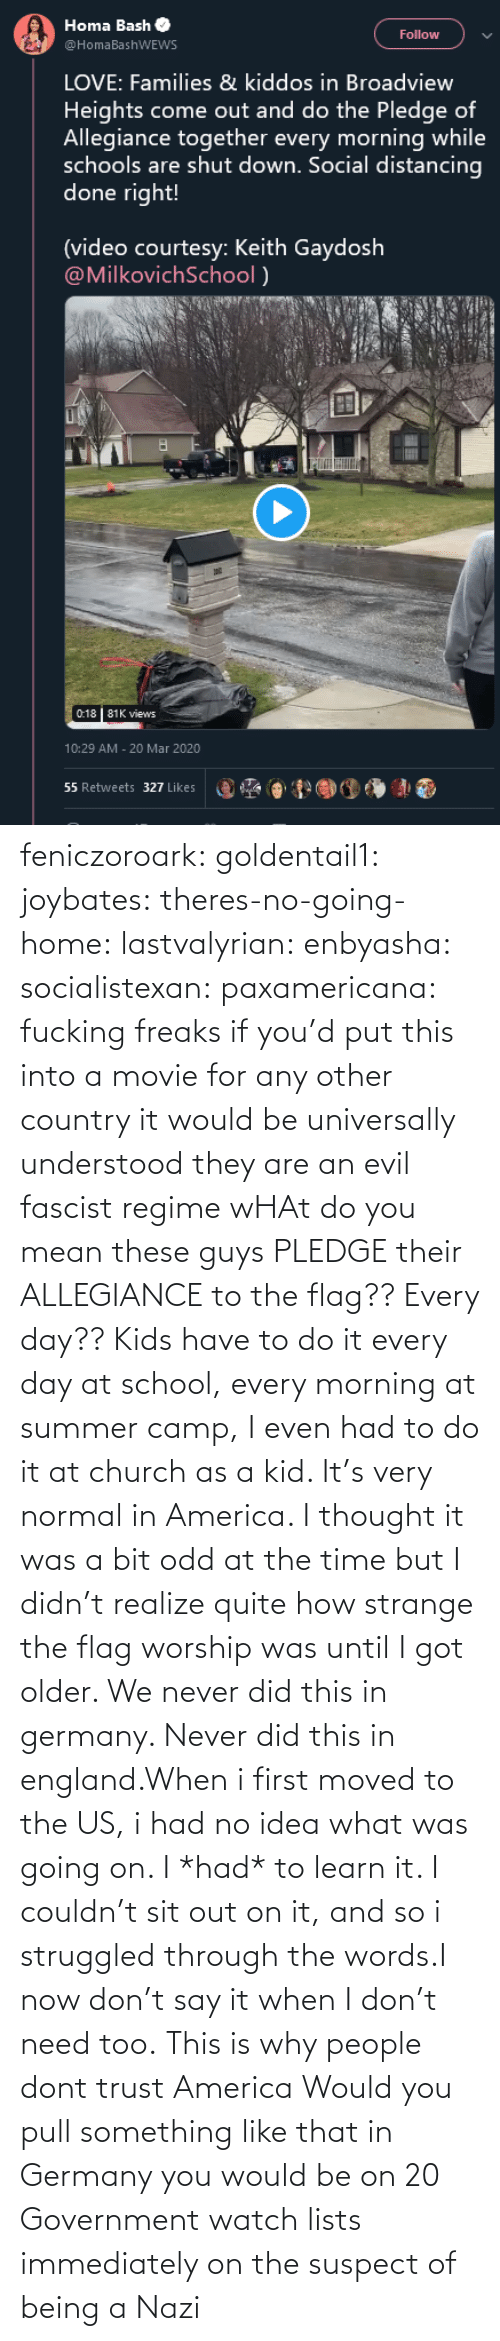 England: feniczoroark:  goldentail1:  joybates:  theres-no-going-home:  lastvalyrian:  enbyasha:  socialistexan:  paxamericana: fucking freaks       if you'd put this into a movie for any other country it would be universally understood they are an evil fascist regime    wHAt do you mean these guys PLEDGE their ALLEGIANCE to the flag?? Every day??   Kids have to do it every day at school, every morning at summer camp, I even had to do it at church as a kid. It's very normal in America. I thought it was a bit odd at the time but I didn't realize quite how strange the flag worship was until I got older.    We never did this in germany. Never did this in england.When i first moved to the US, i had no idea what was going on. I *had* to learn it. I couldn't sit out on it, and so i struggled through the words.I now don't say it when I don't need too.   This is why people dont trust America    Would you pull something like that in Germany you would be on 20 Government watch lists immediately on the suspect of being a Nazi